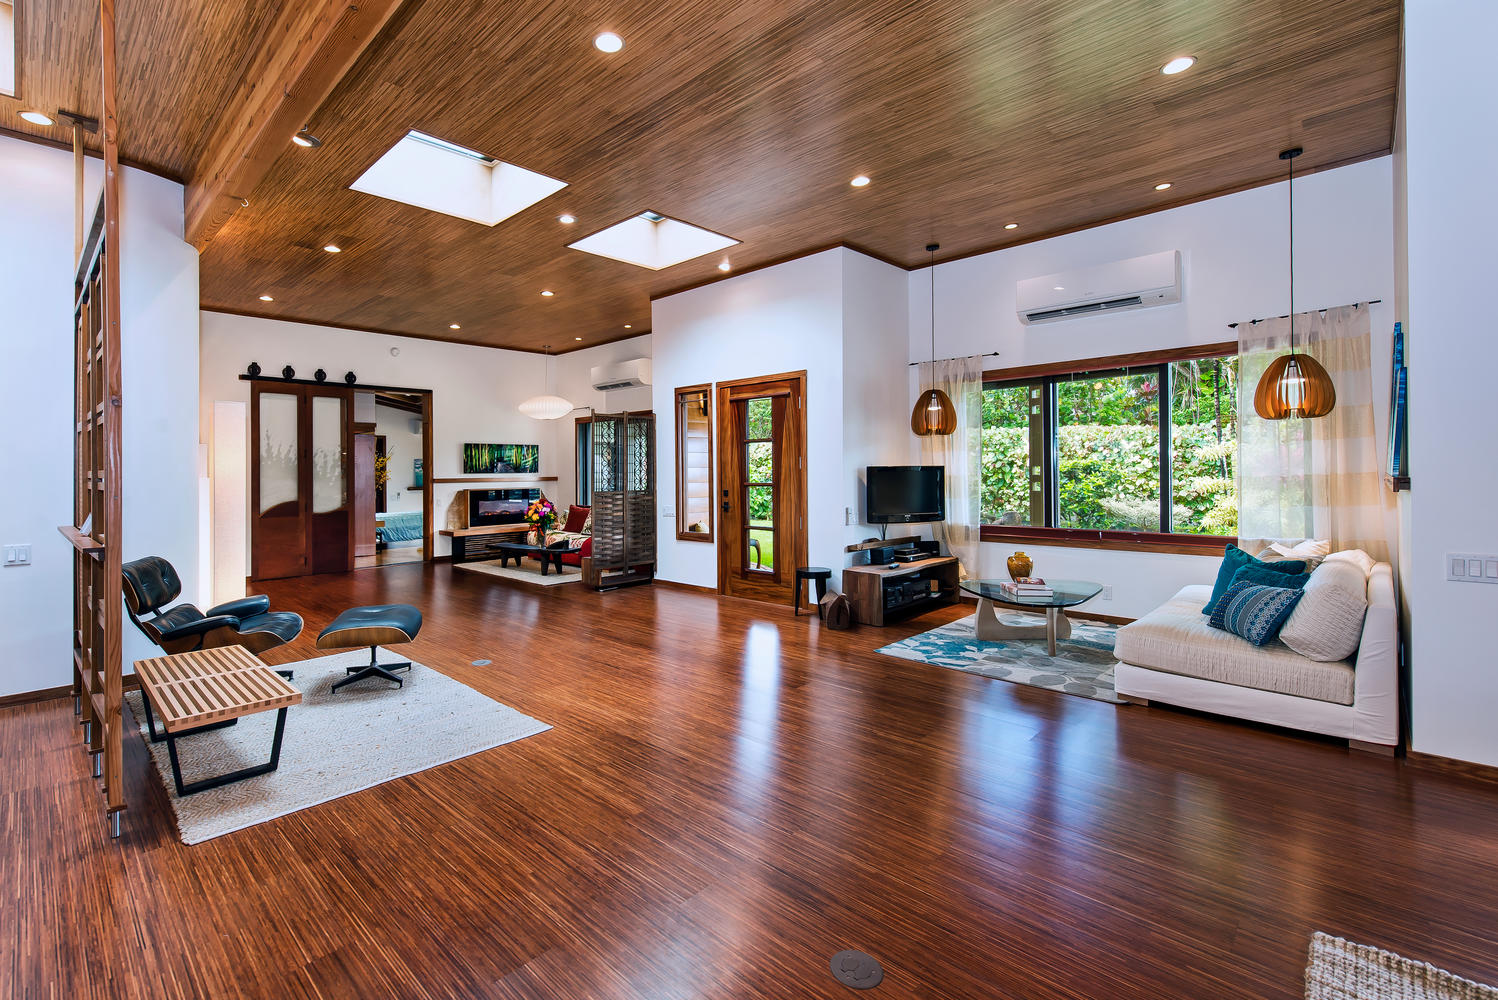 Living Room - 812 N Kalaheo Ave #F, Kailua 96734